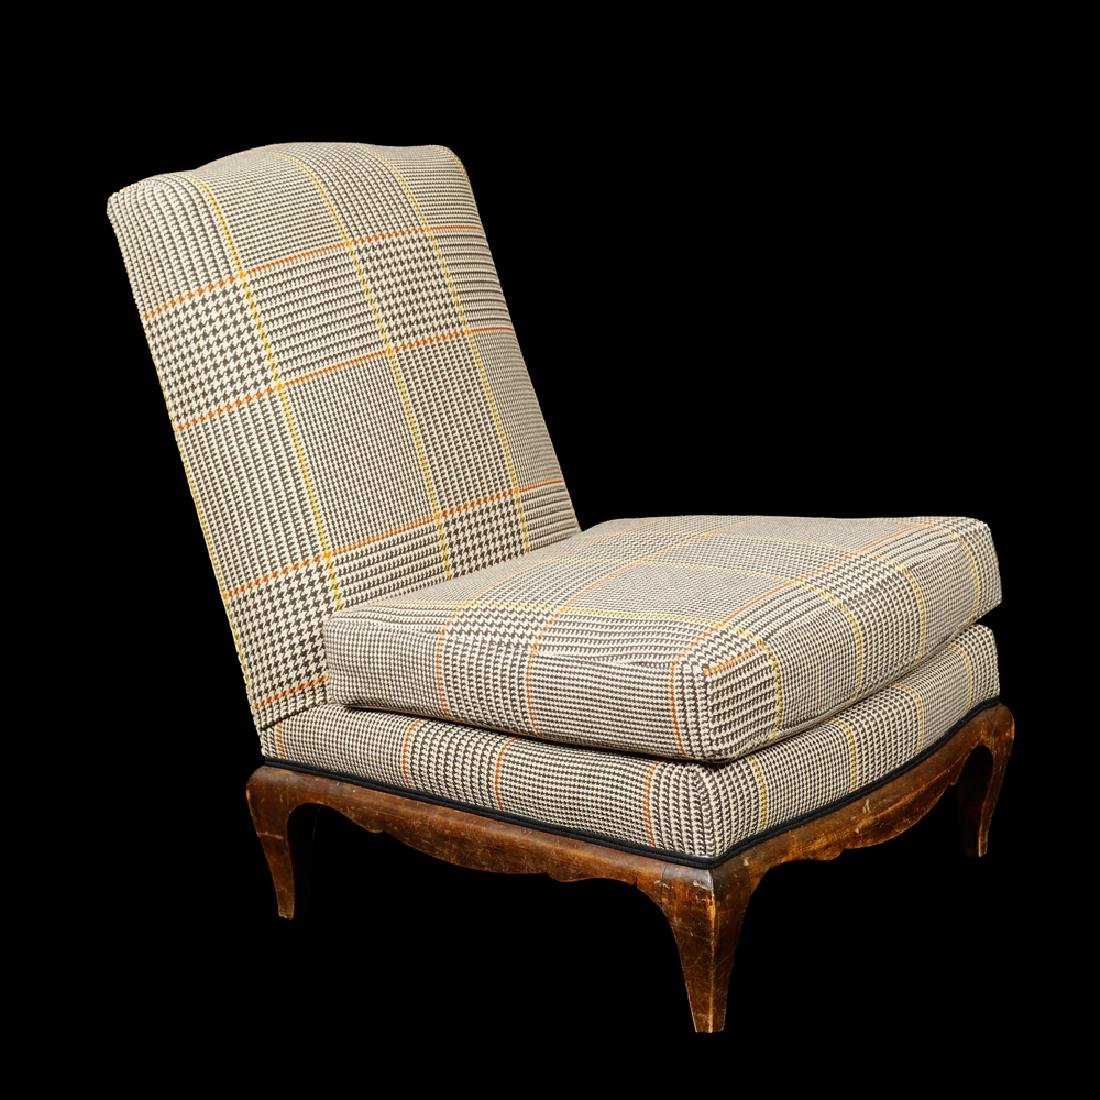 A low armchair Italy early 20th century 76x56x46 cm. - 2